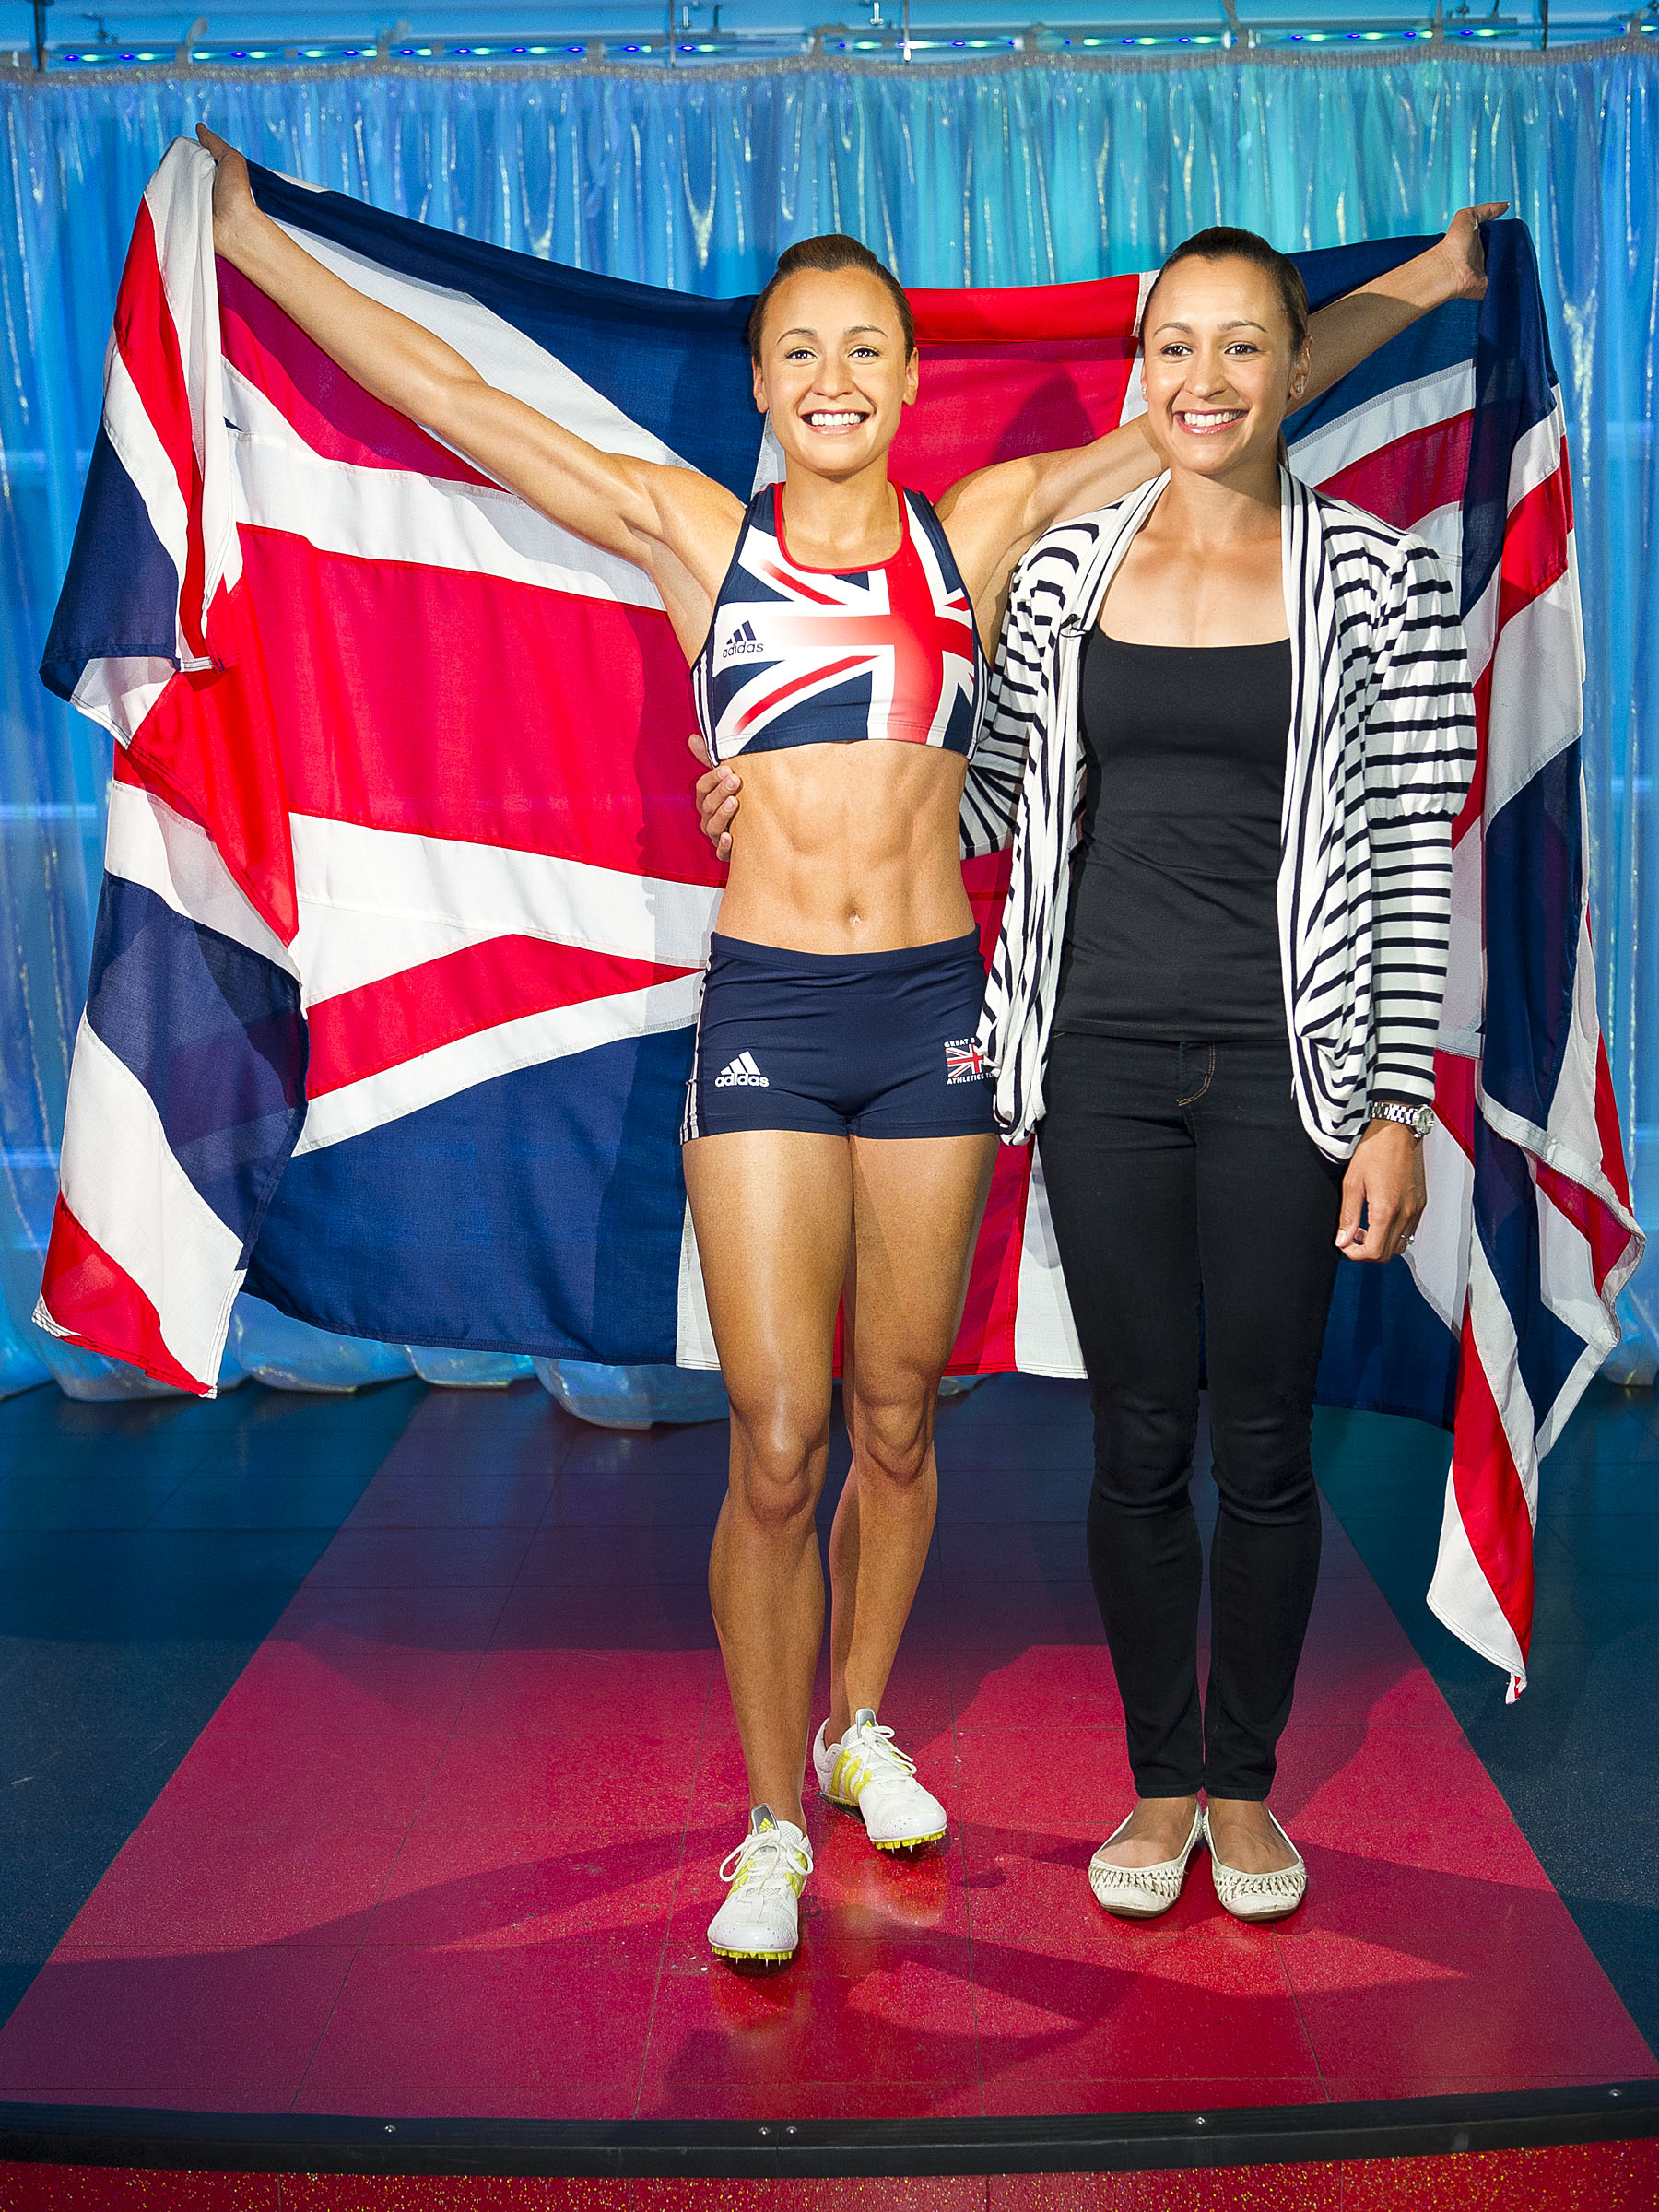 Jessica Ennis-Hill with her figure at Madame Tussauds